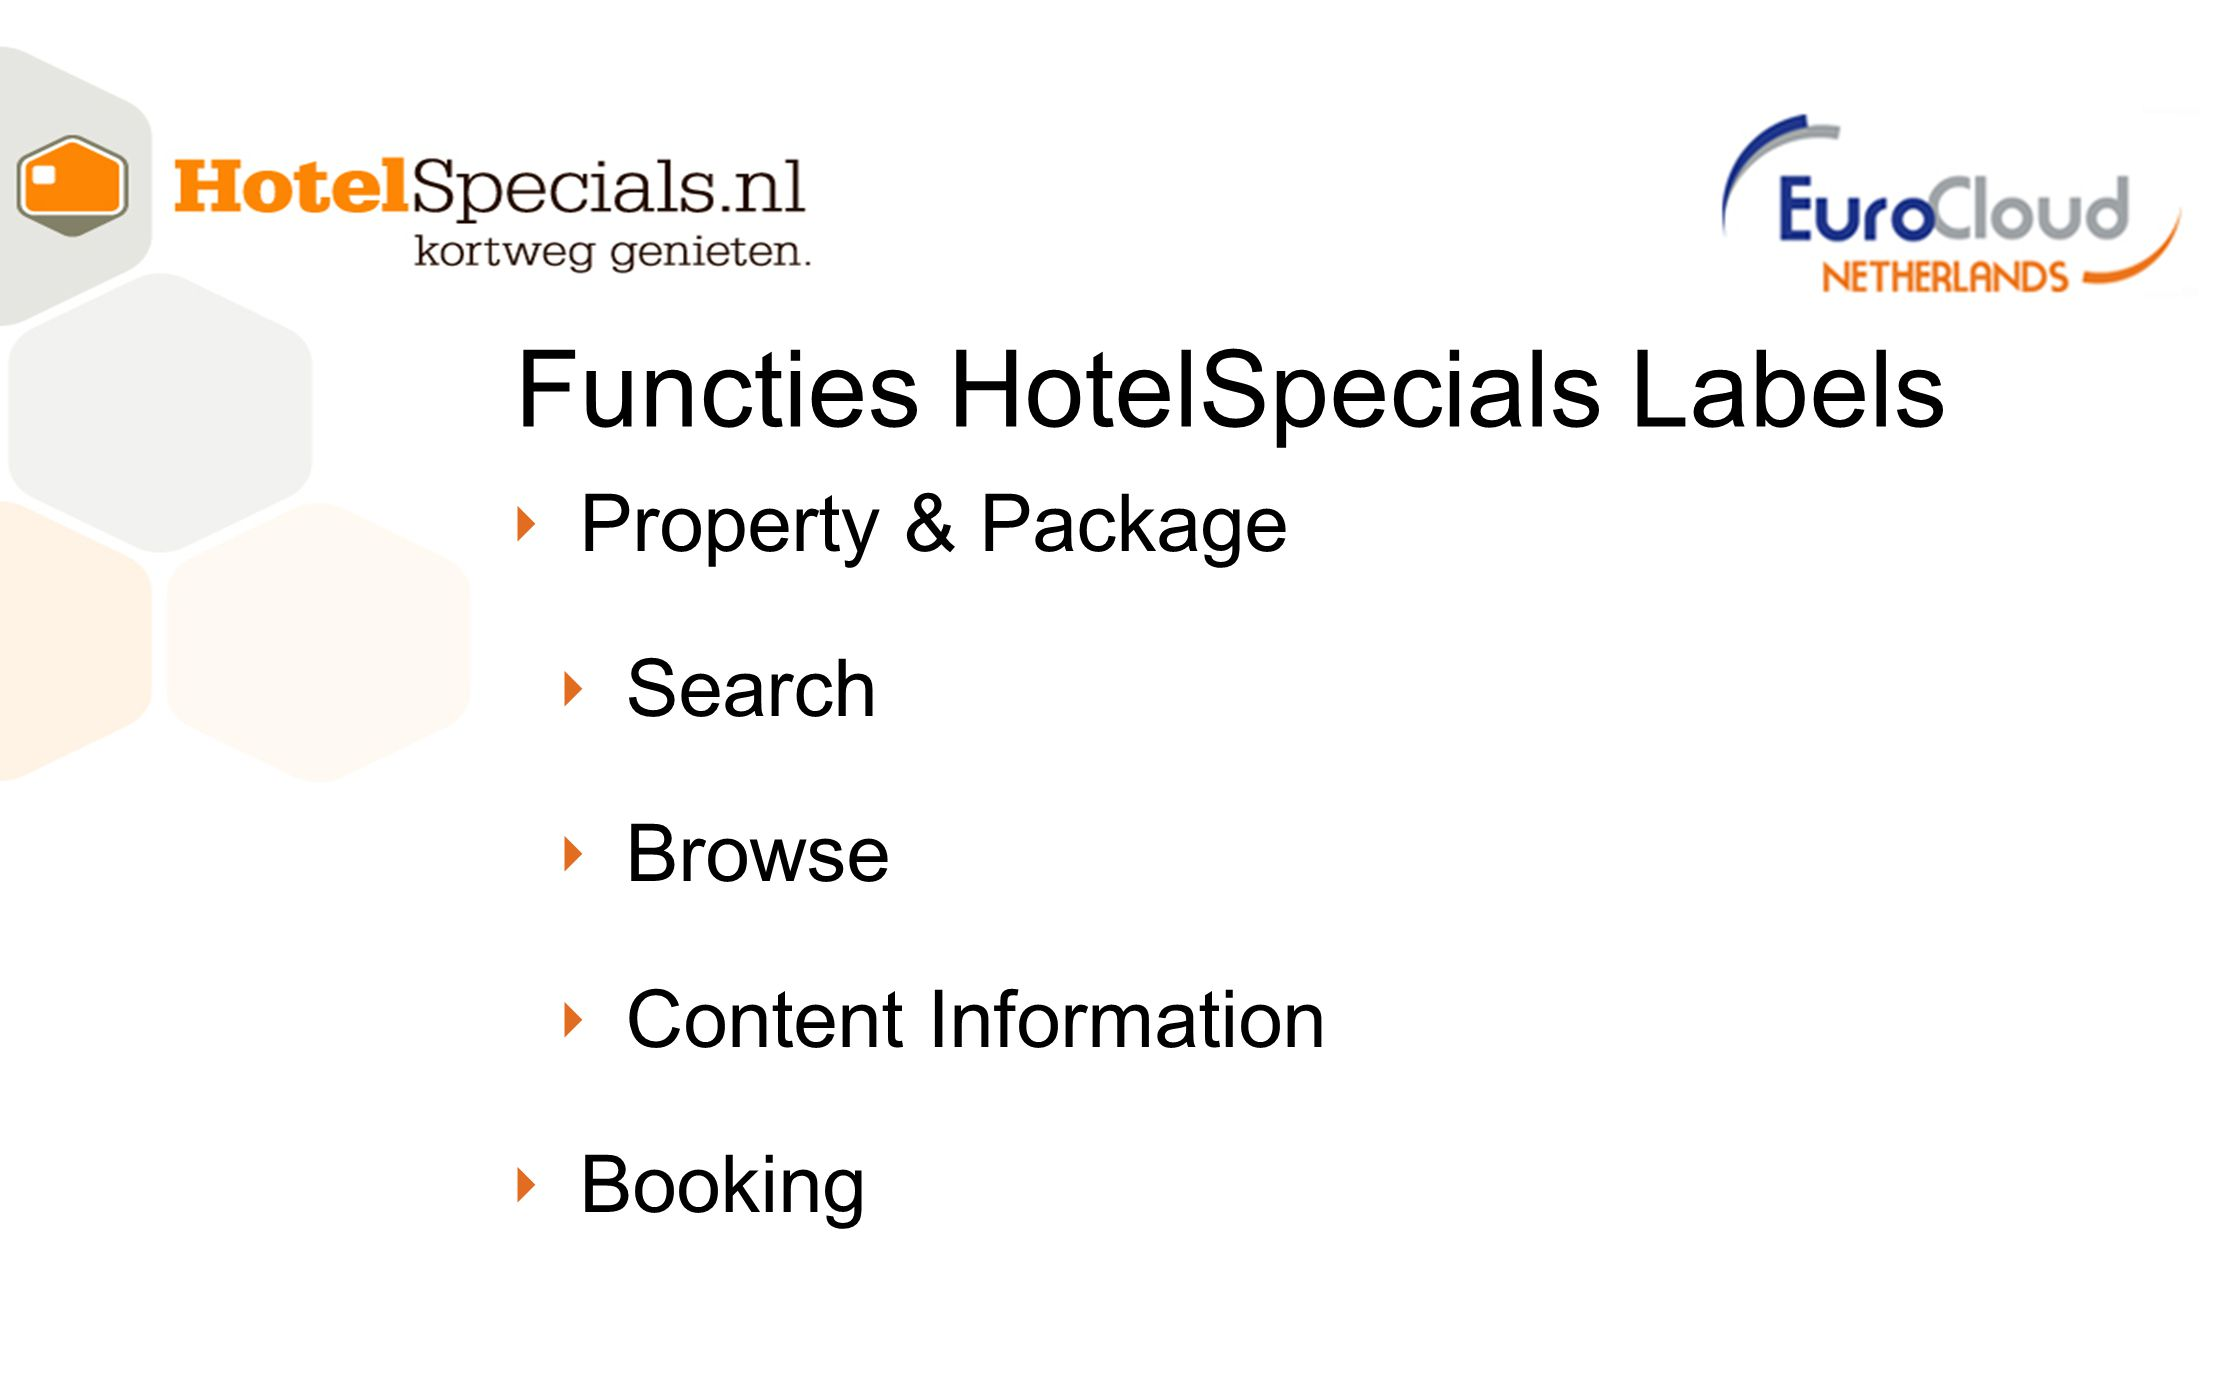 Functies HotelSpecials Labels